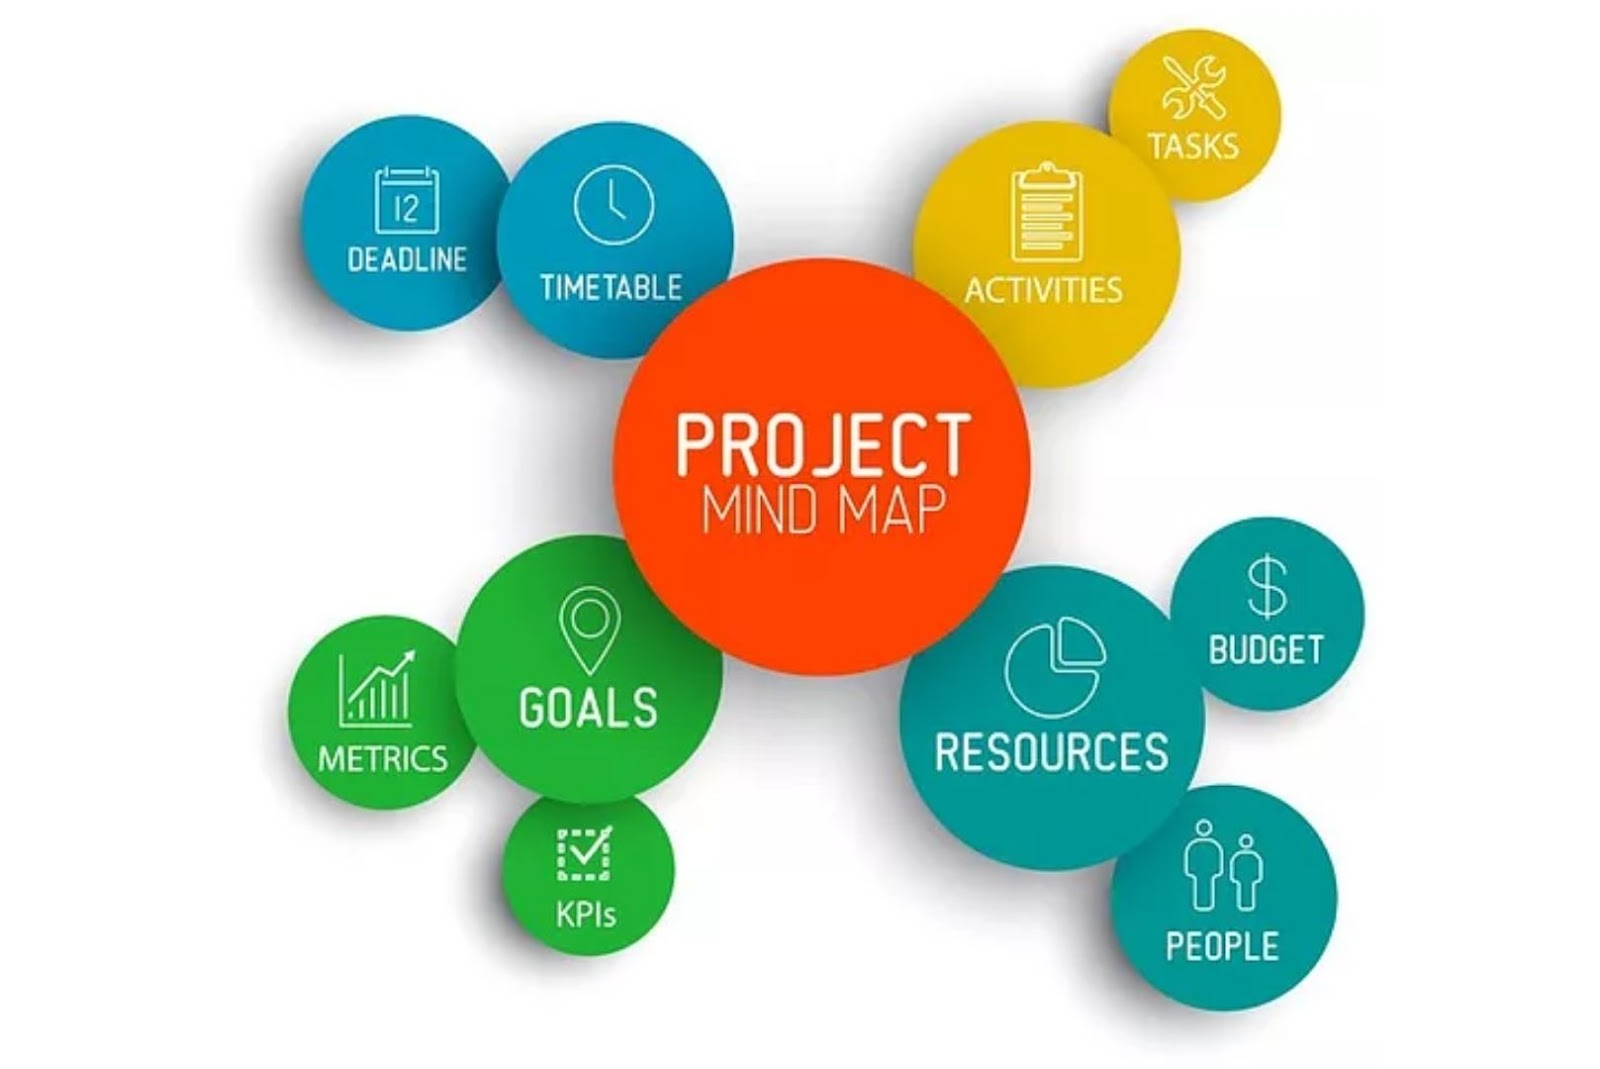 Project Mind Map